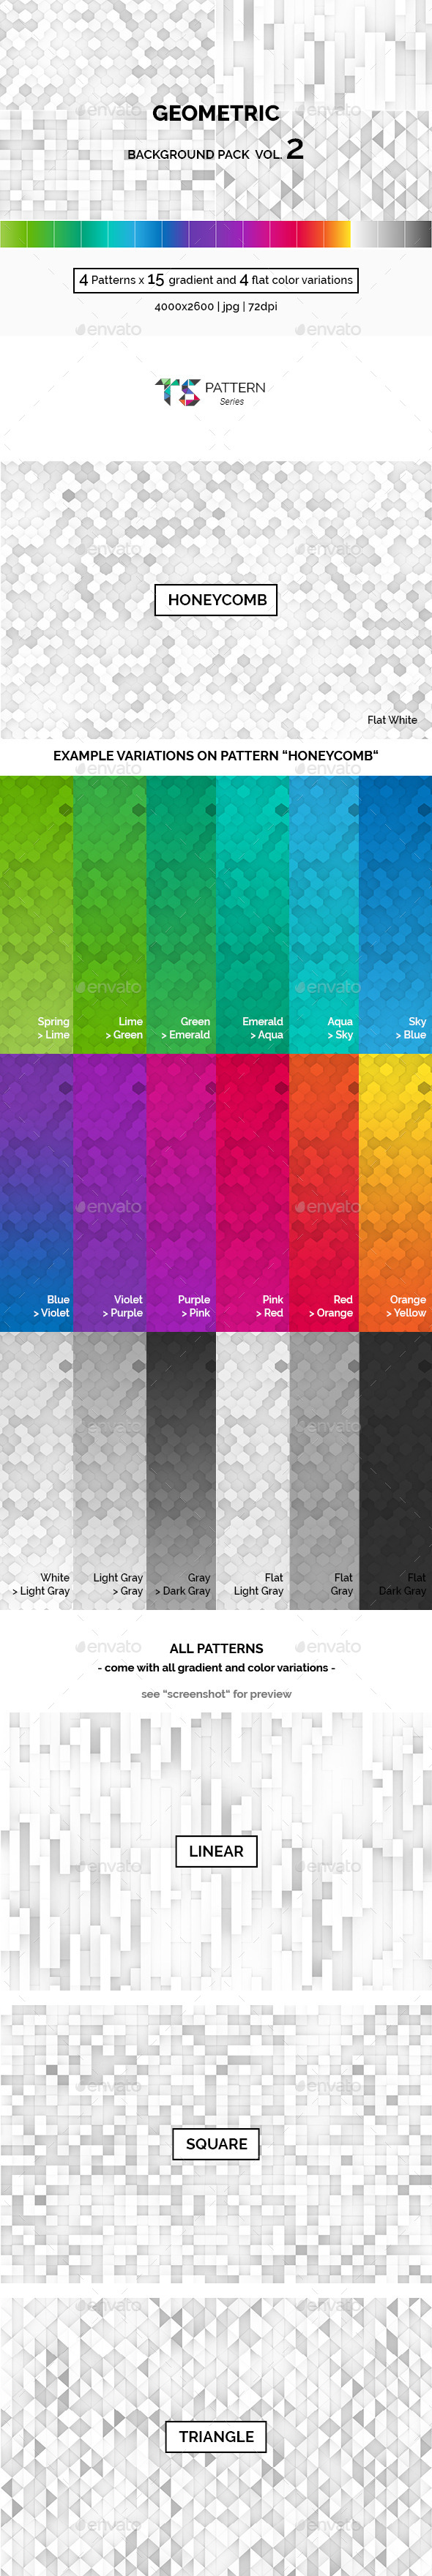 Geometric Background Pack Vol.2 - Patterns Backgrounds